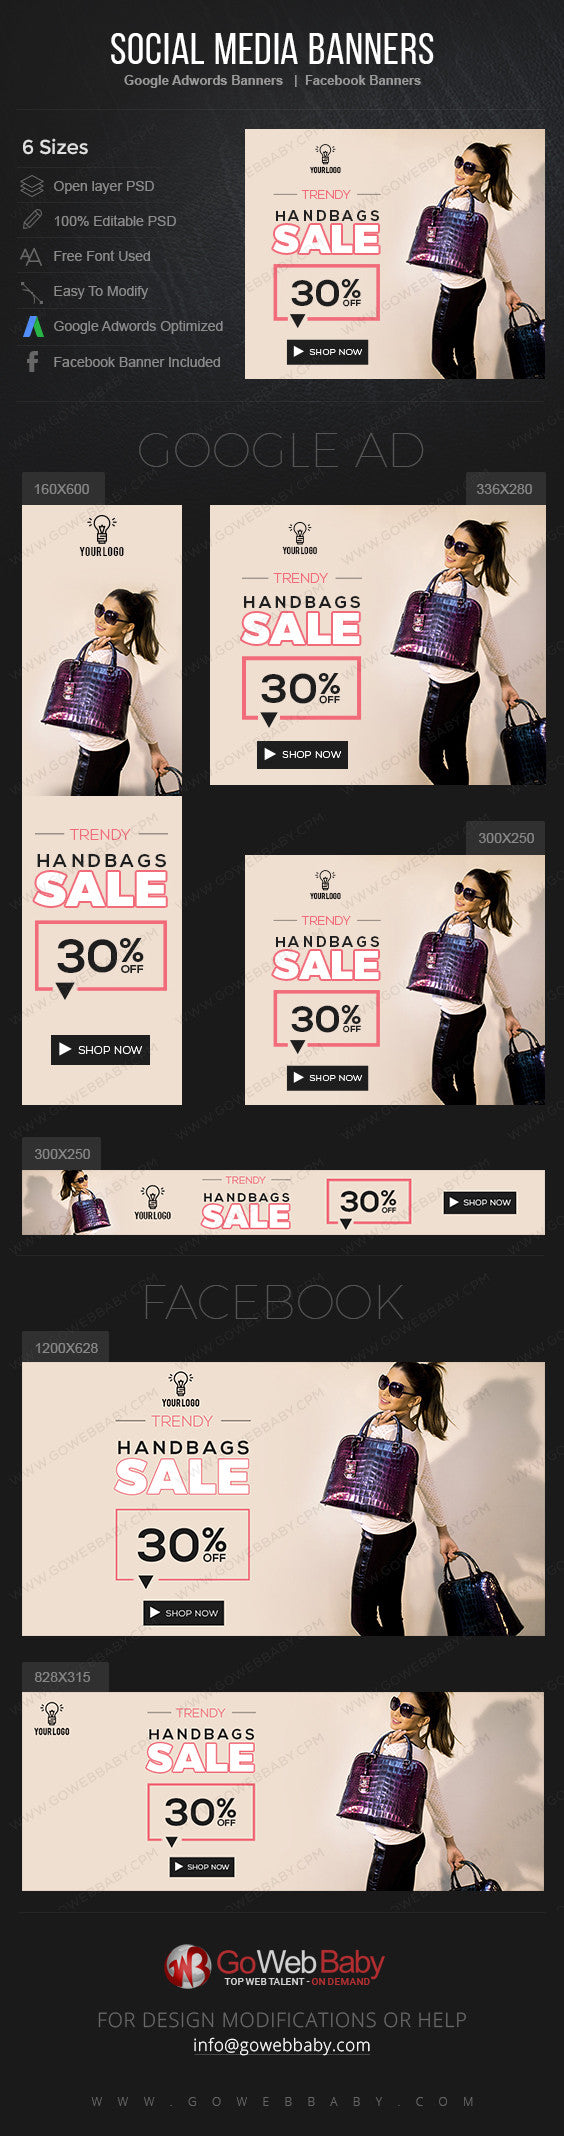 Google Adwords Display Banner with Facebook Banners -Women's Handbags For Website Marketing - GoWebBaby.Com